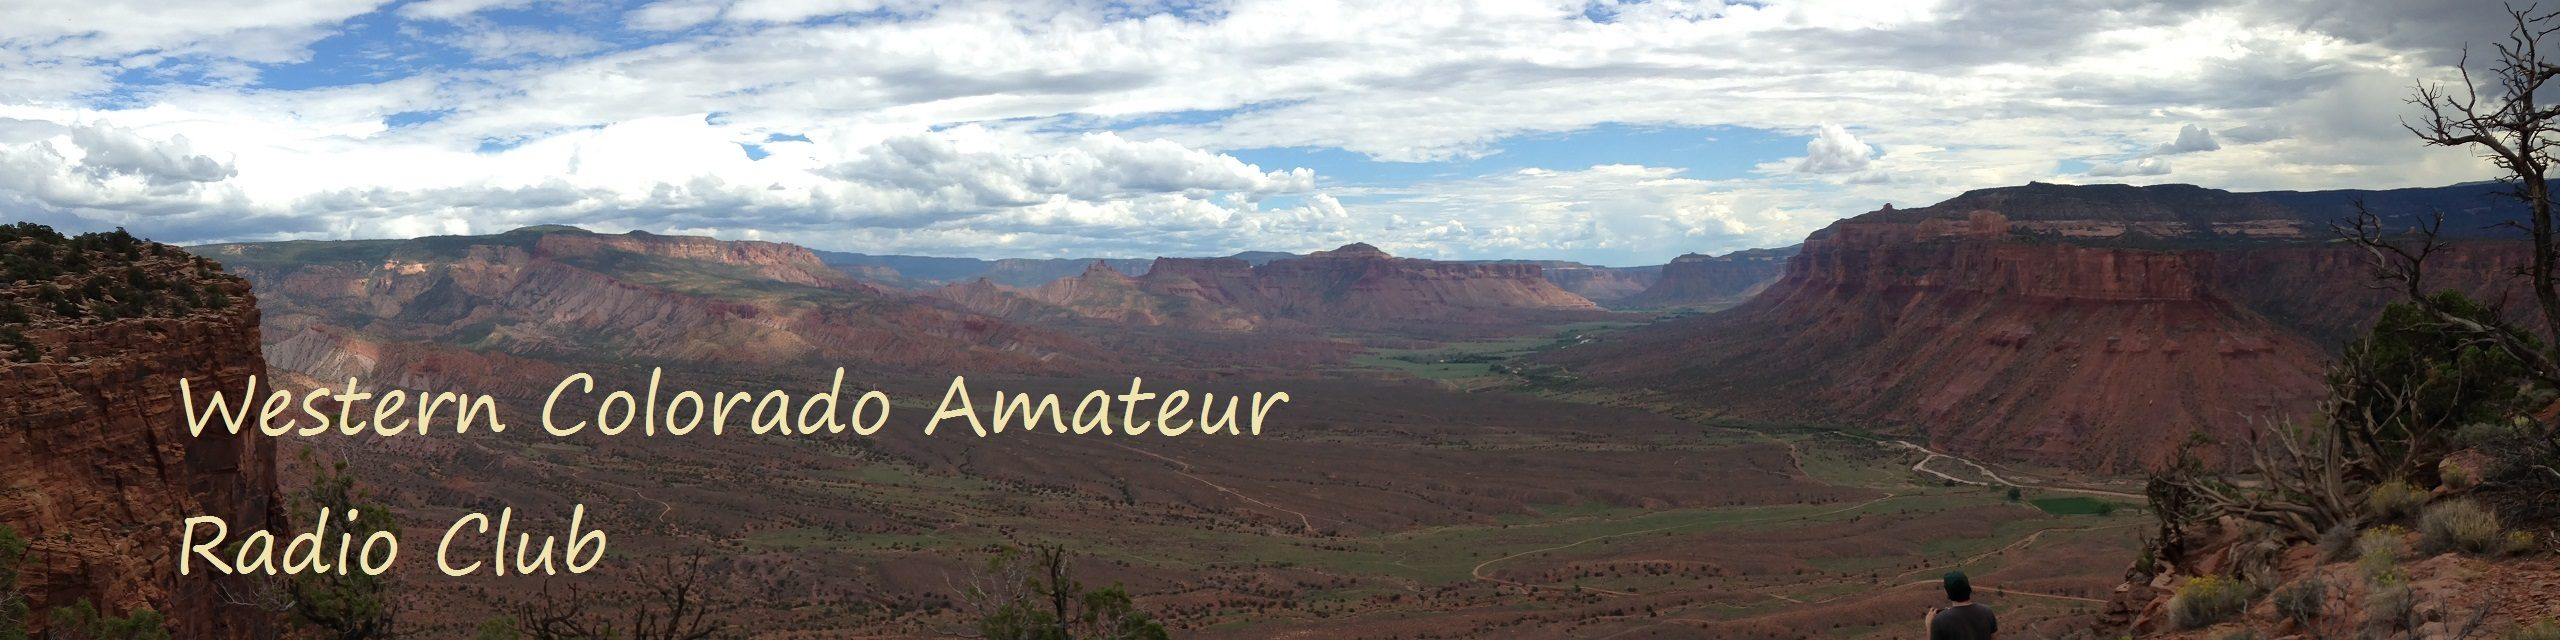 Western Colorado Amateur Radio Club